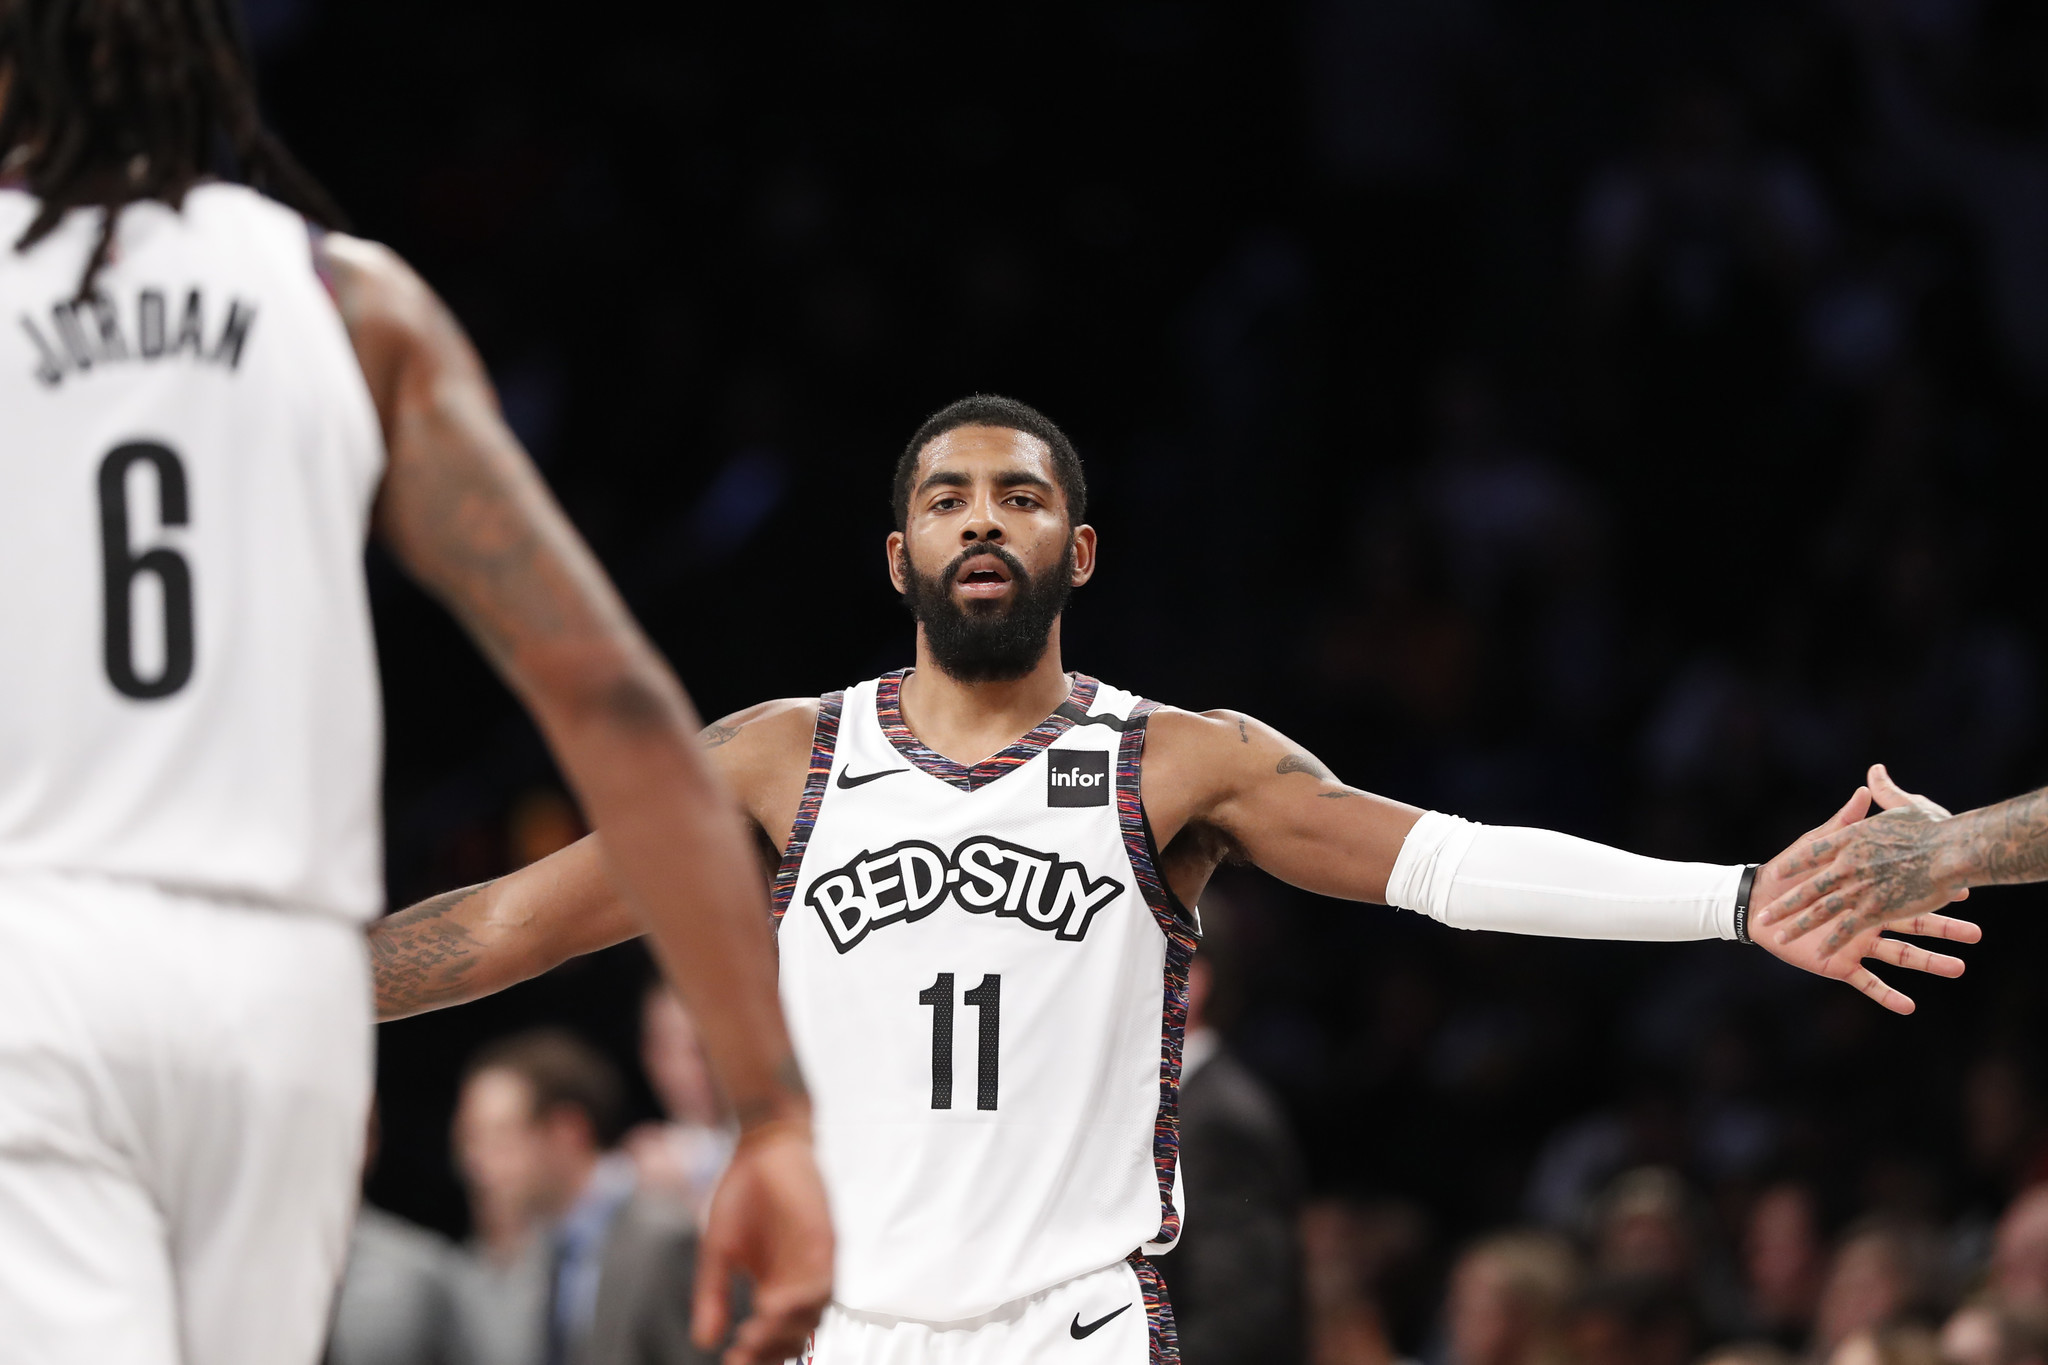 Kyrie Irving returns to score 21 points in 20 minutes as Nets thrash Hawks